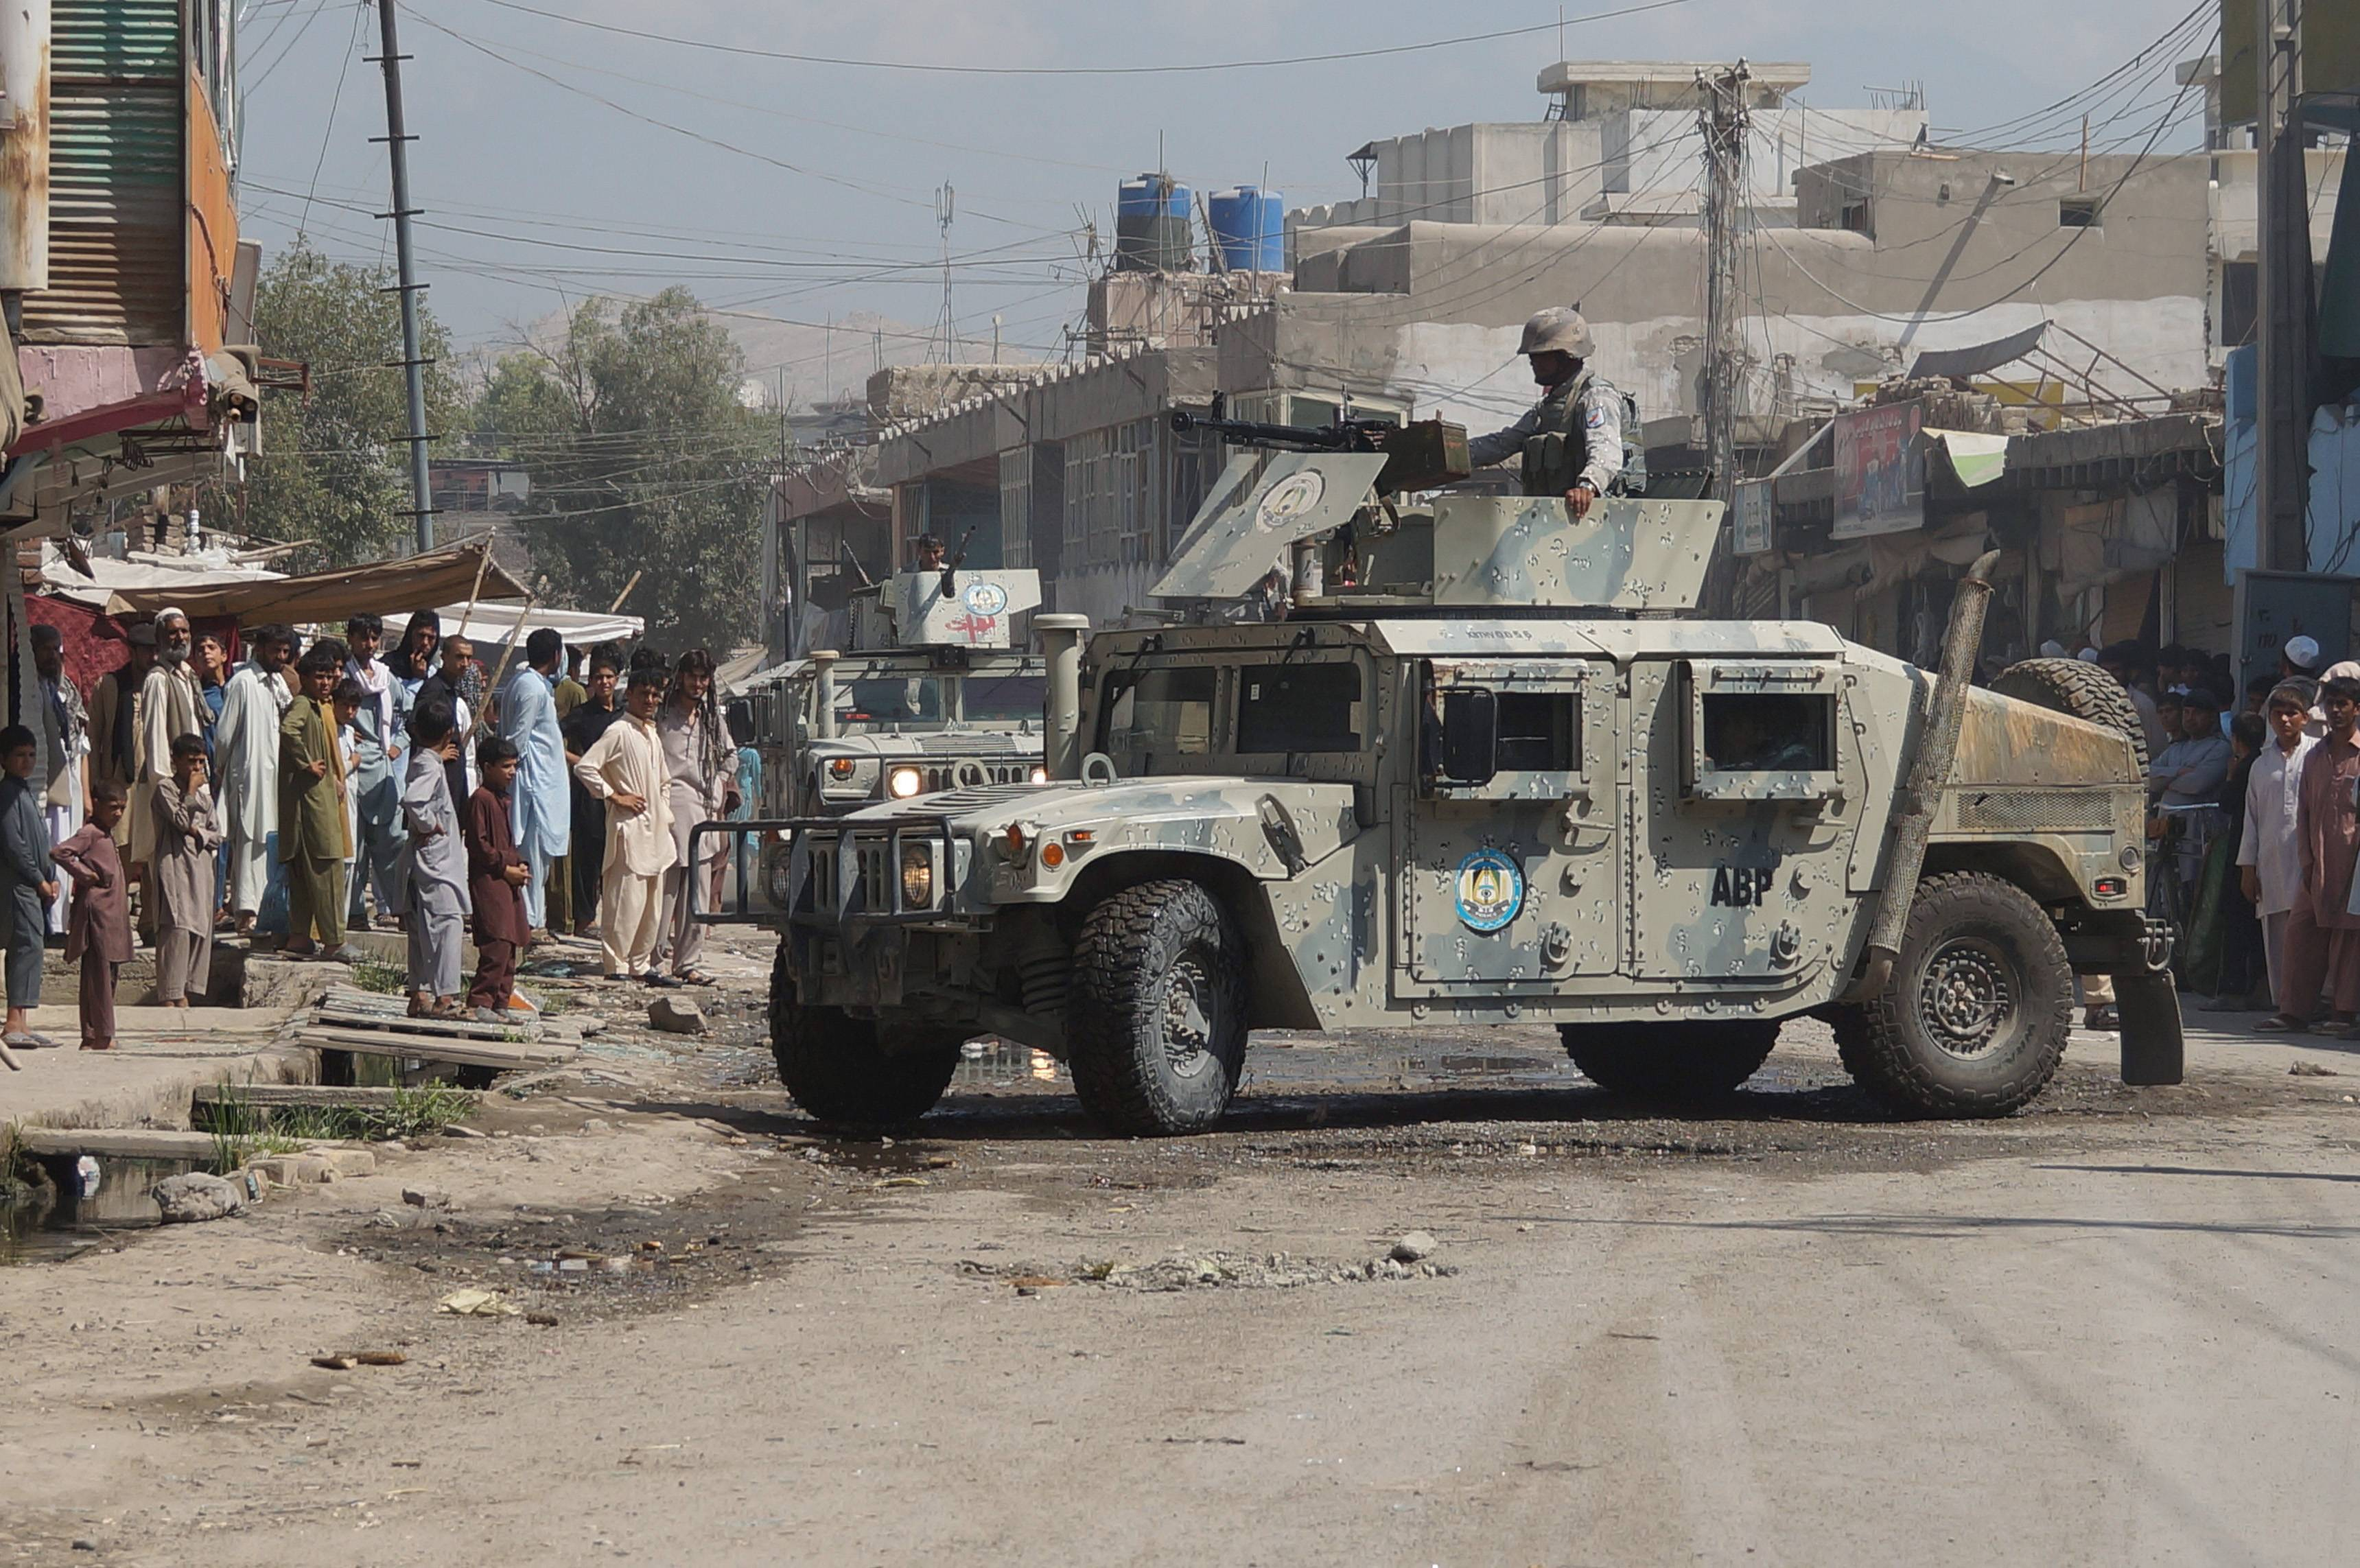 Afghan security forces inspect the site of a suicide attack in Jalalabad, east of Kabul, Afghanistan, Saturday, Aug. 30. A suicide bomber in a truck blew himself up at an intelligence headquarters in eastern Afghanistan, setting off an intense firefight with security forces, officials said.